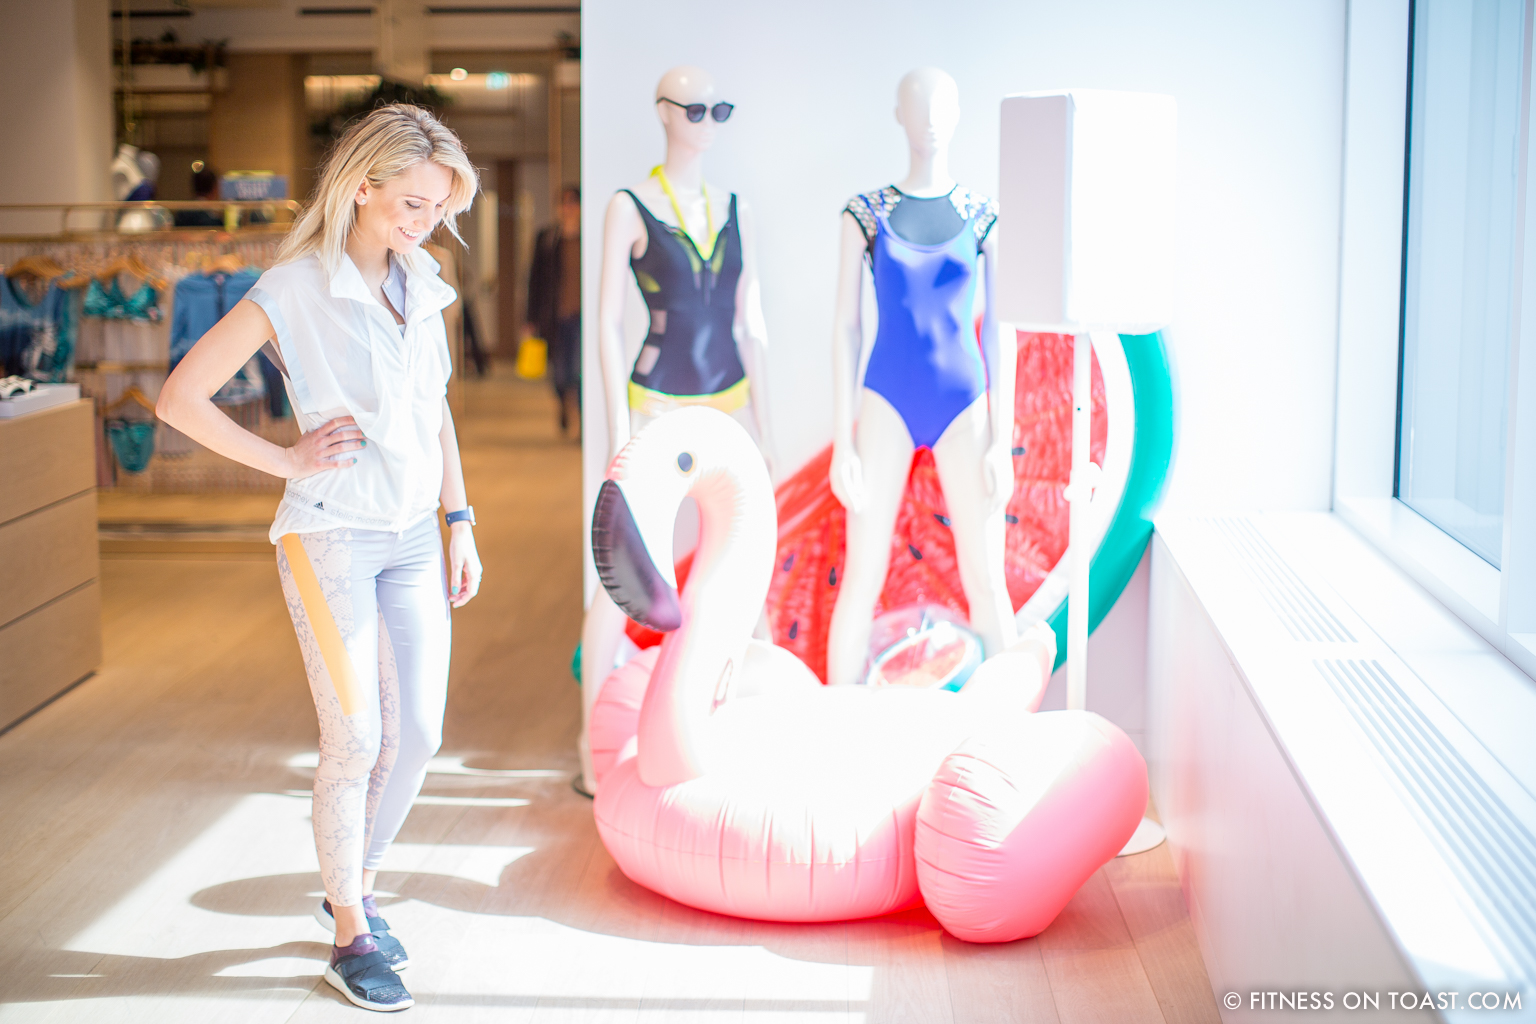 Faya Nilsson of Fitness On Toast in collaboration with Selfridges for 'The Body Studio'; Met some friends, mannequins and a pink inflatable flamingo